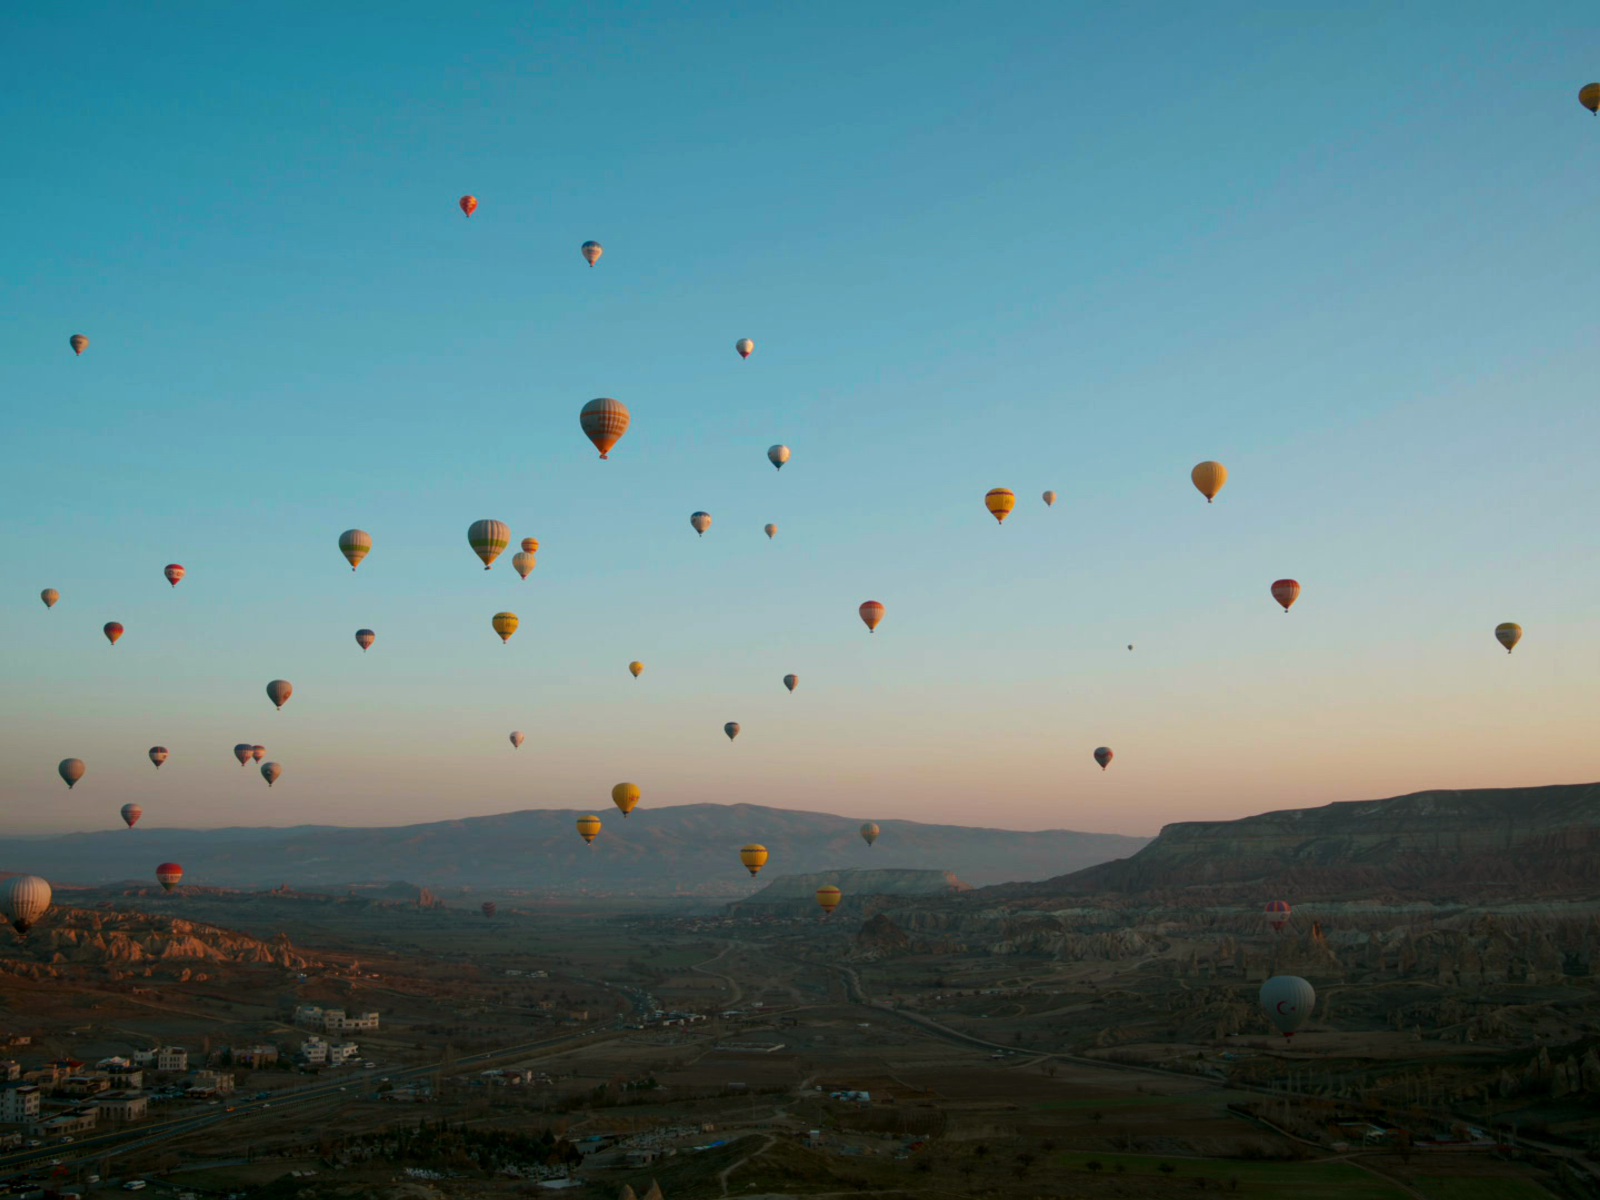 201_Turkey_EuropeFromAbove_LR_002.png